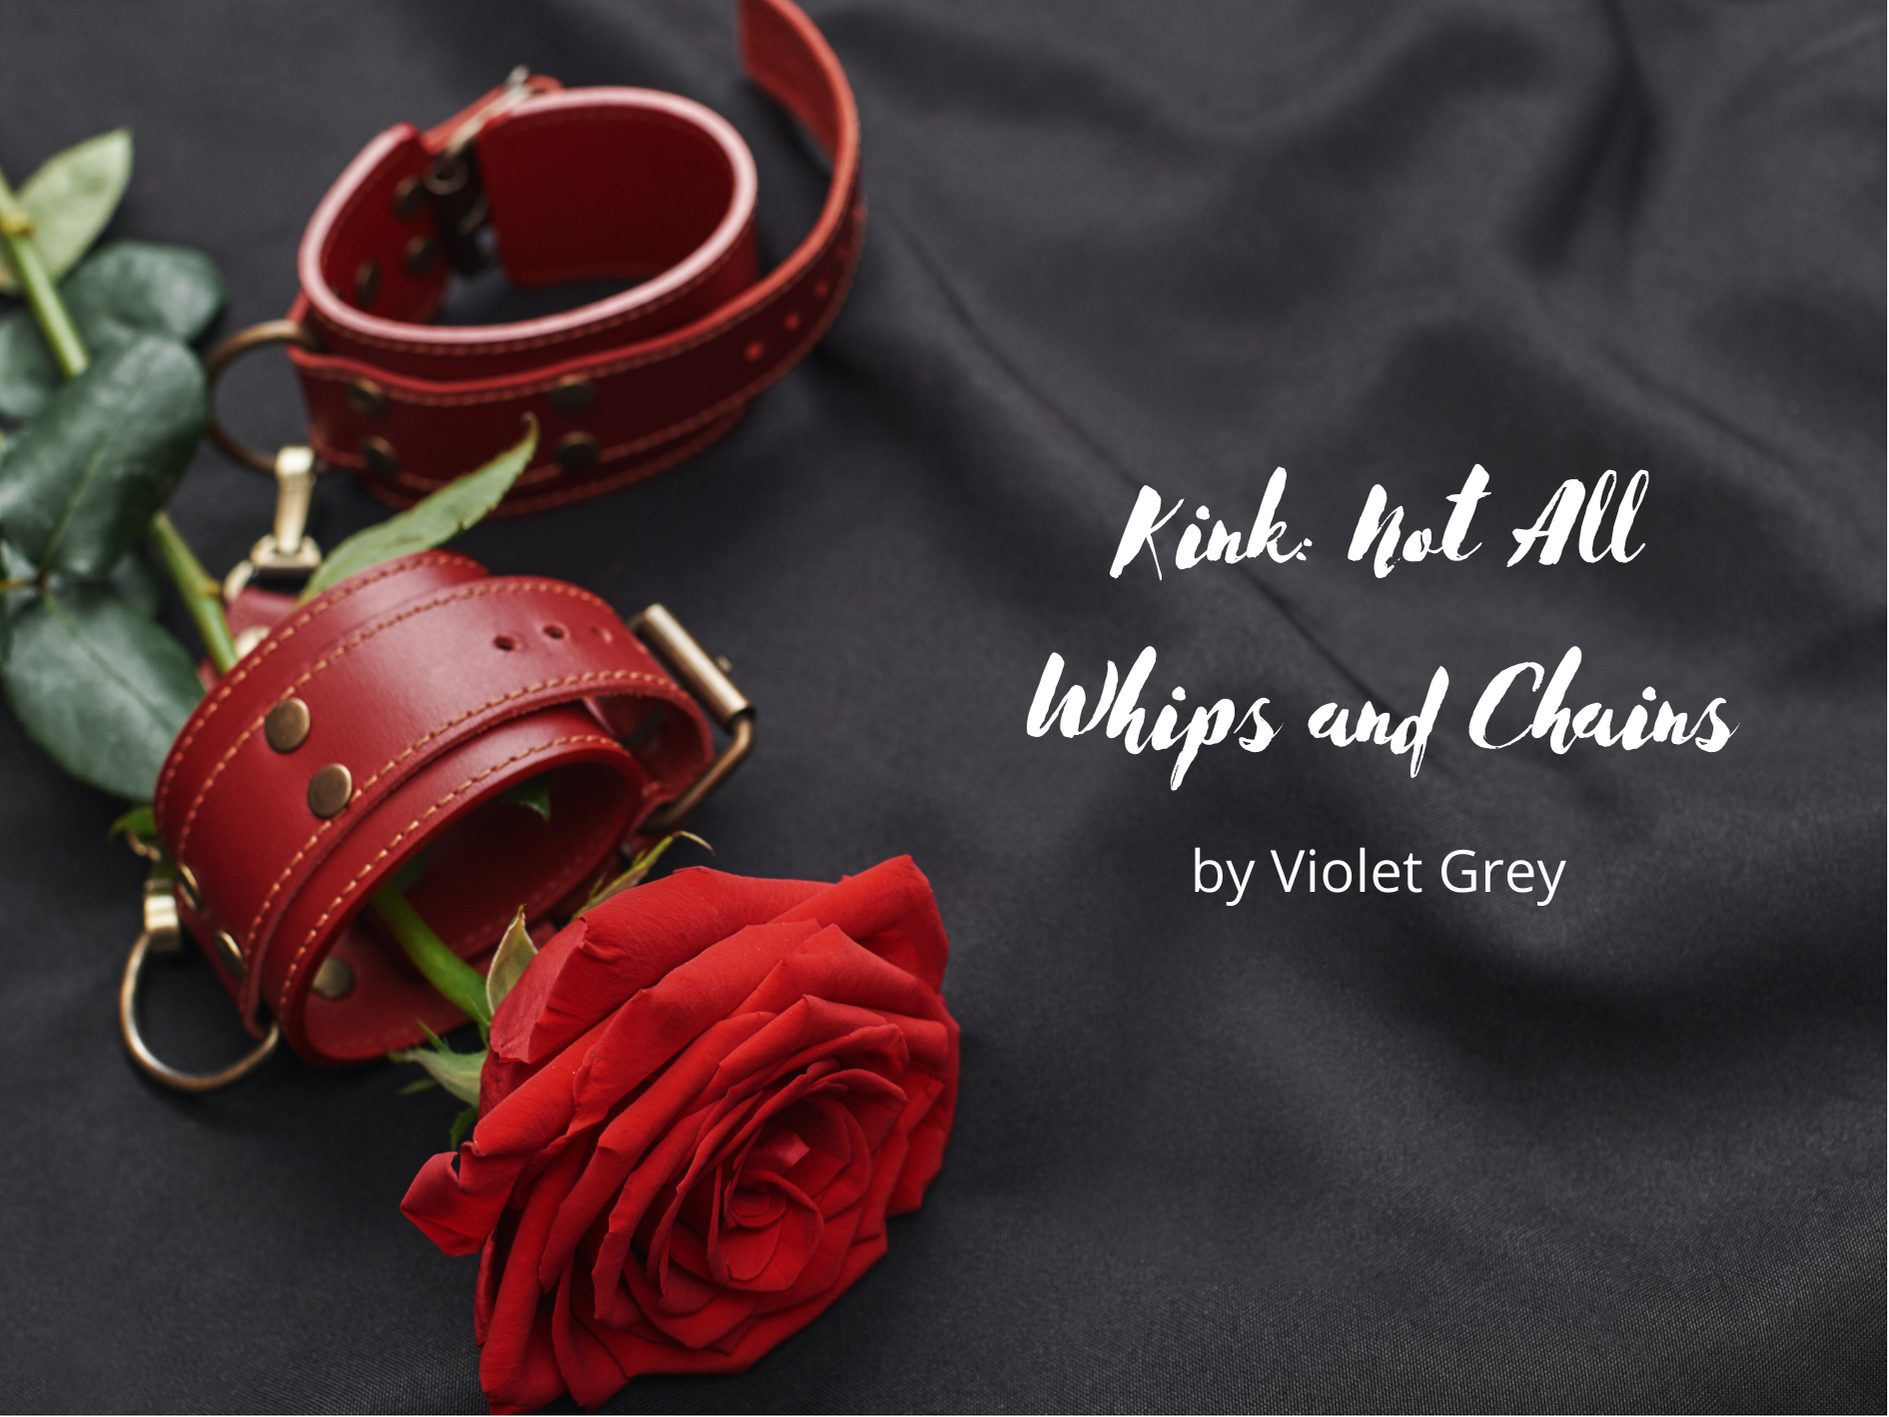 [Guest Blog] Kink: Not All Whips and Chains by Violet Grey